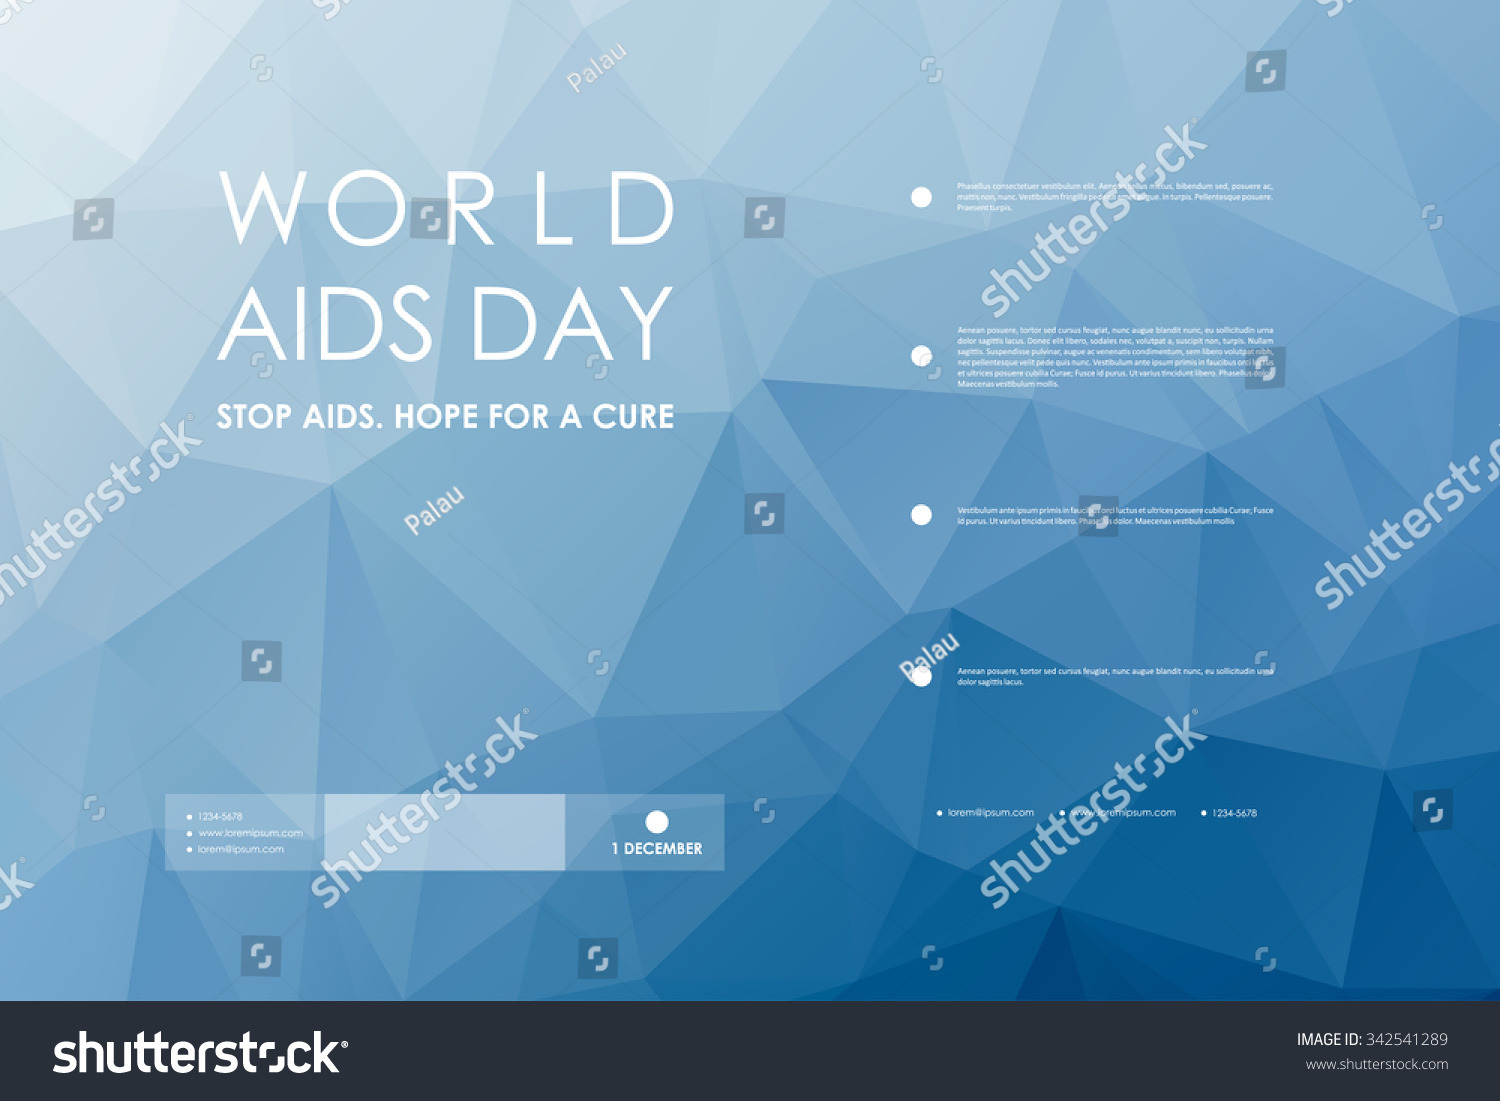 aids brochure template - set of brochure poster templates in world aids day style